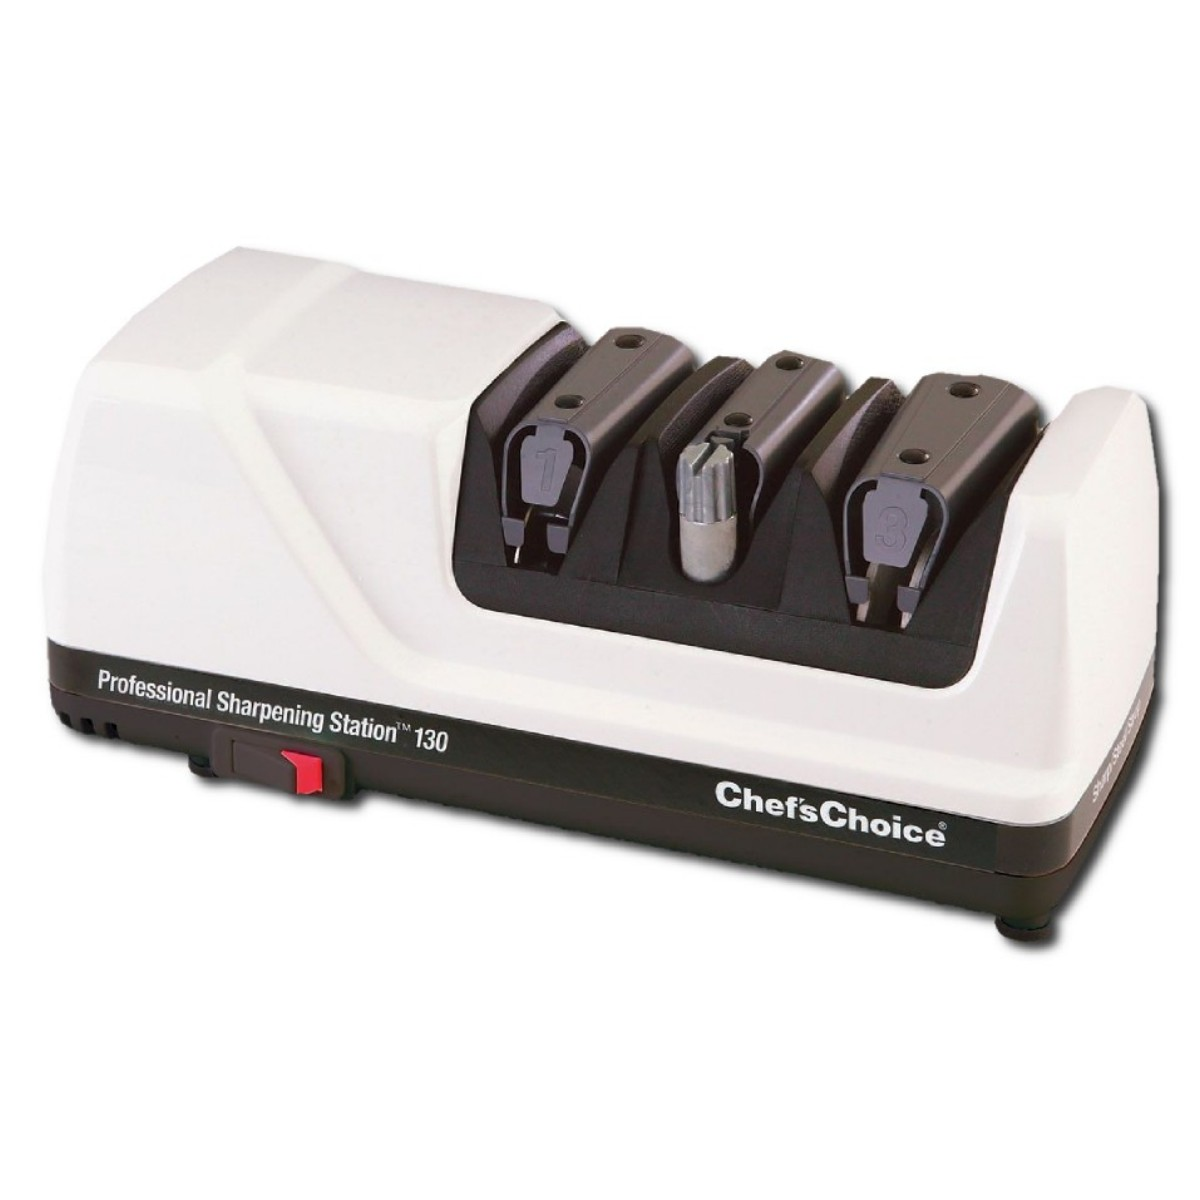 Chef's Choice, Brousek na nože Professional Sharpening Station® CC-130